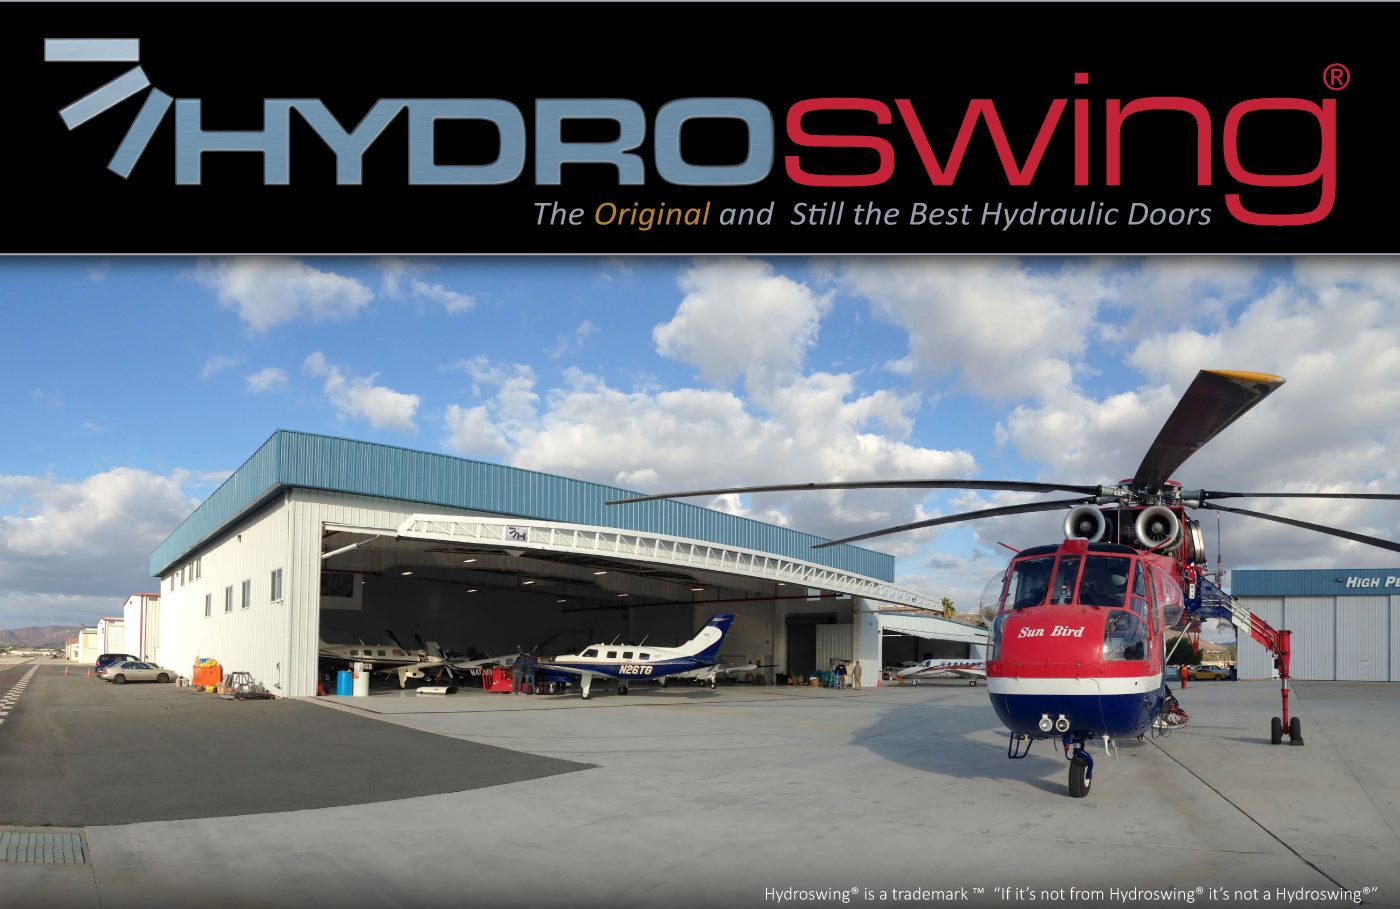 hydroswing helicopter hangar doors use hydraulics to open